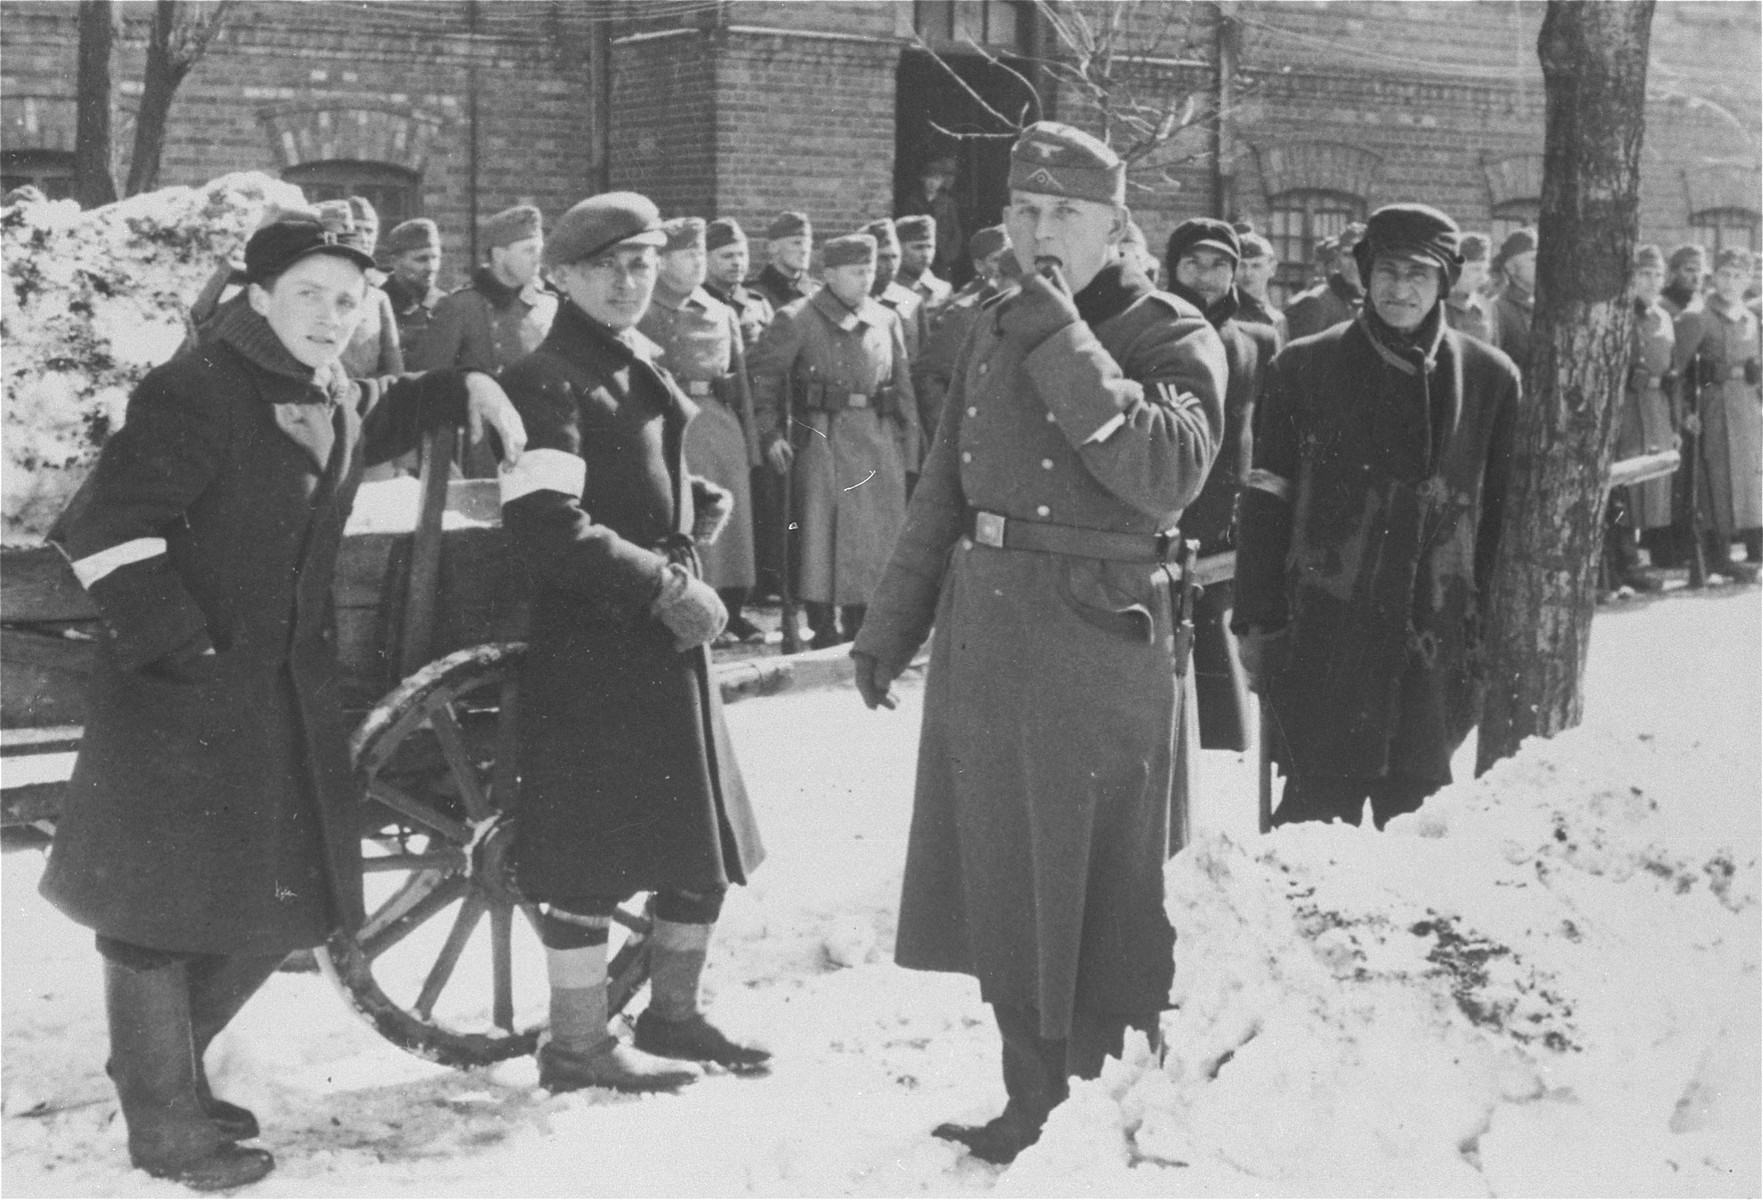 Young Jewish men who have been assigned work clearing snow stand in front of a formation of German troops.  Among those pictured is Leon Celnik (second from the left).